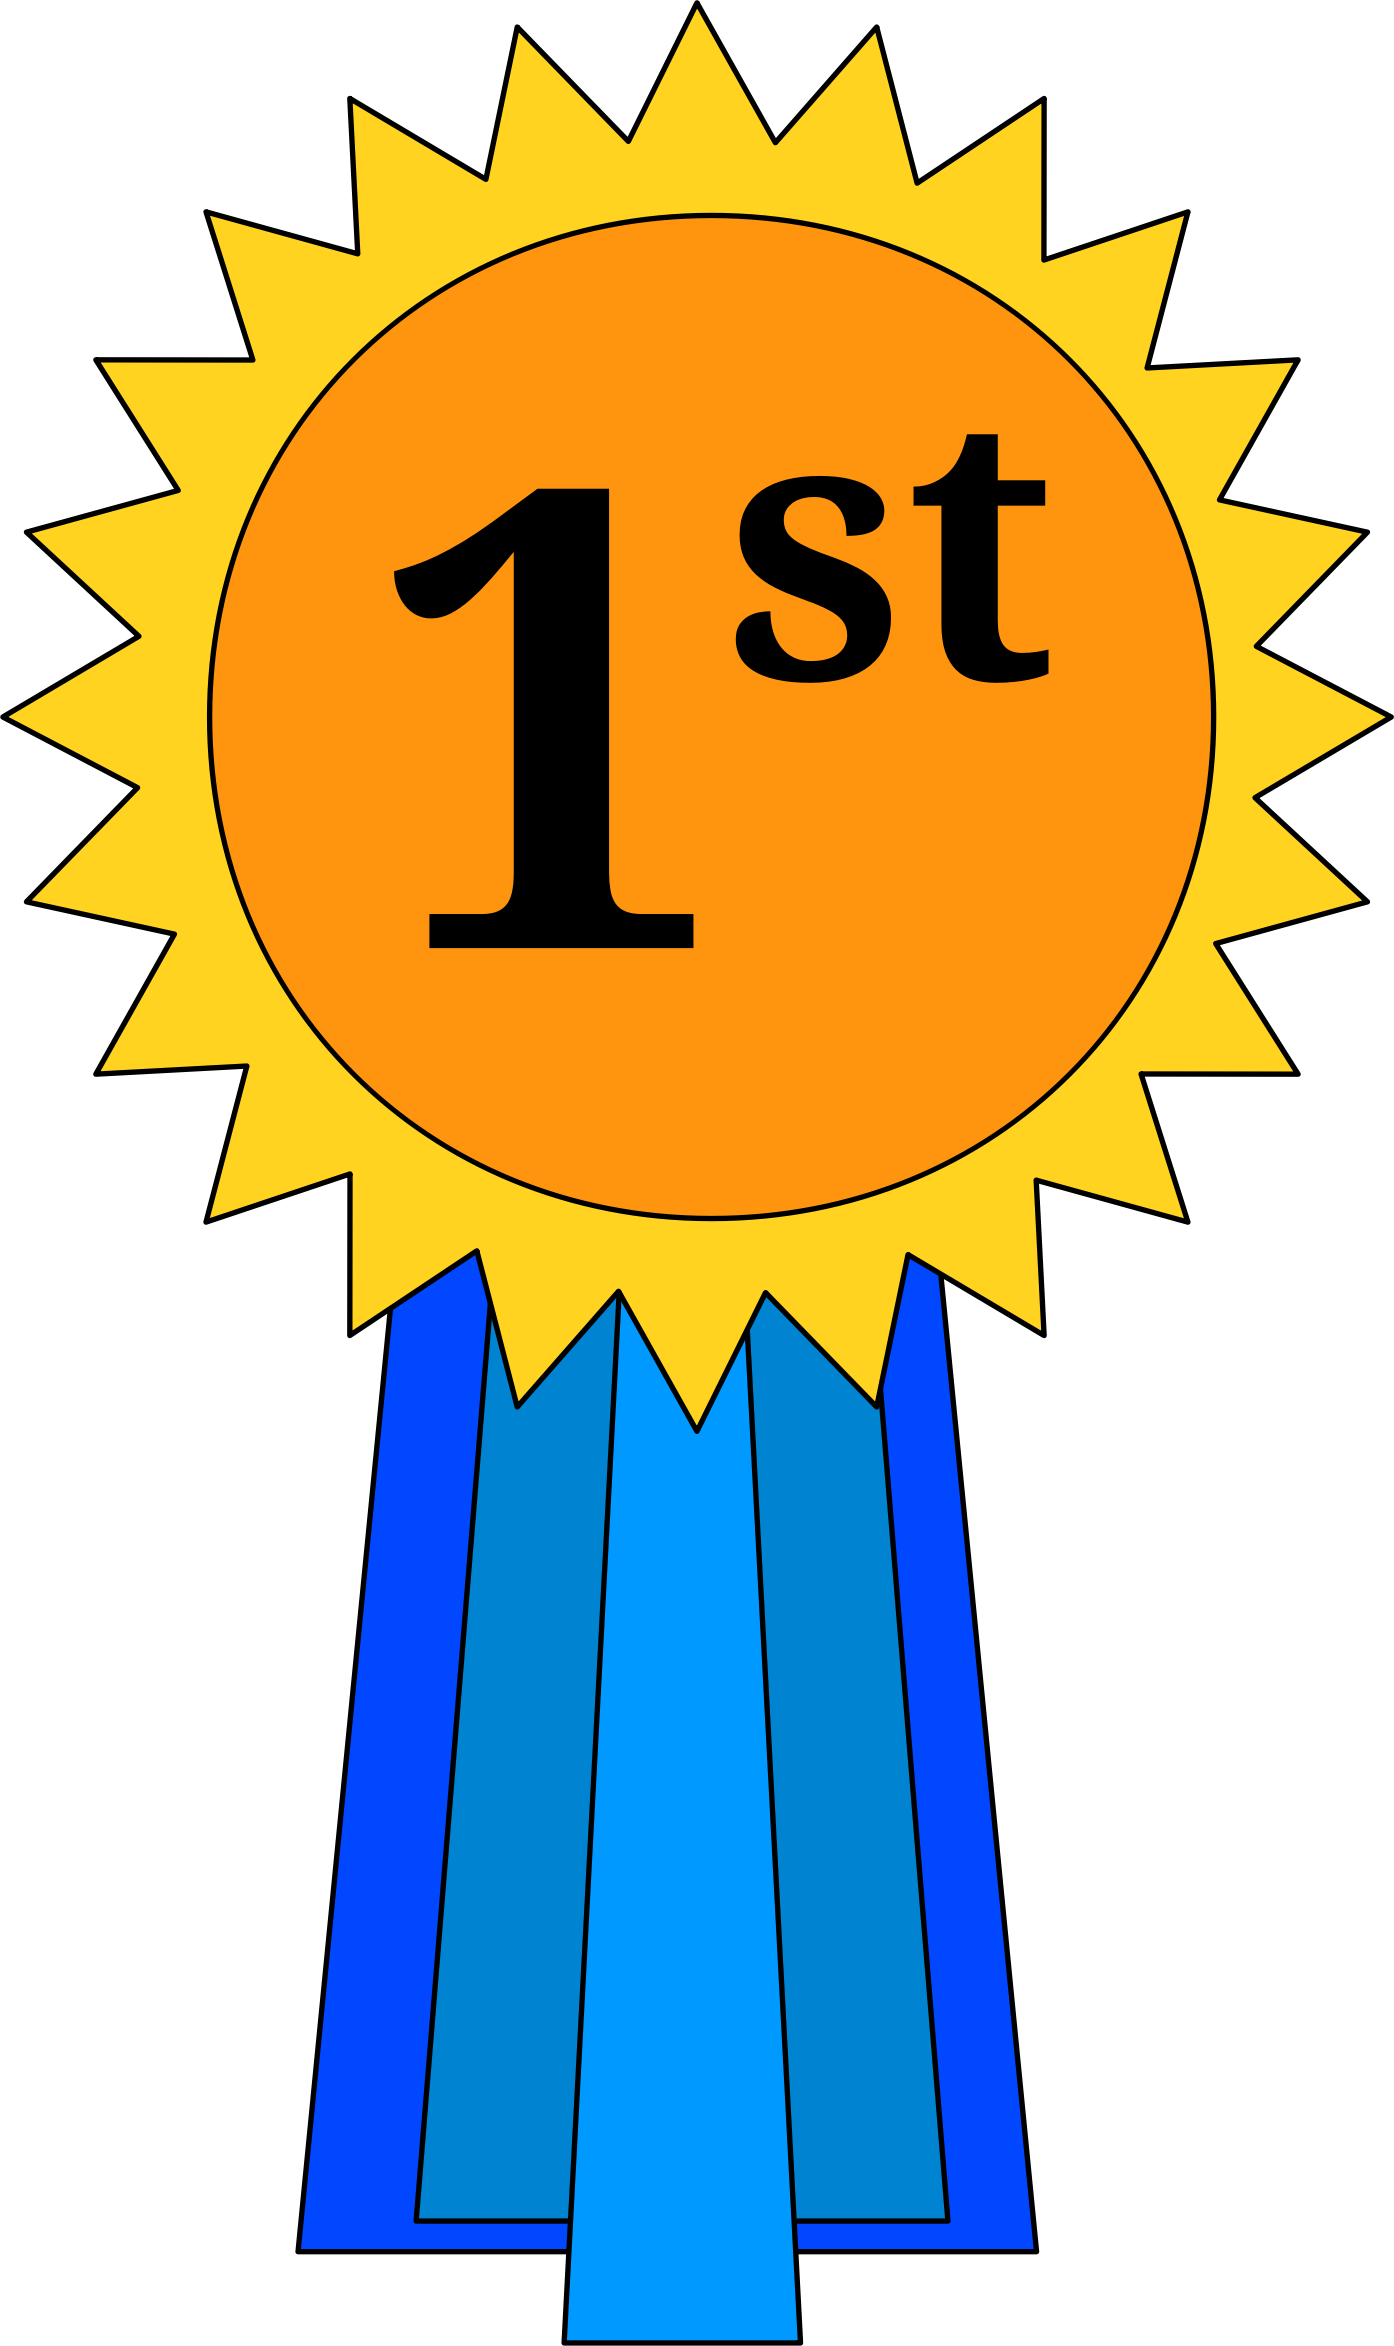 1 place ribbon clipart free stock 1st Place Ribbon by @cross37, A basic first place award ribbon, on ... free stock